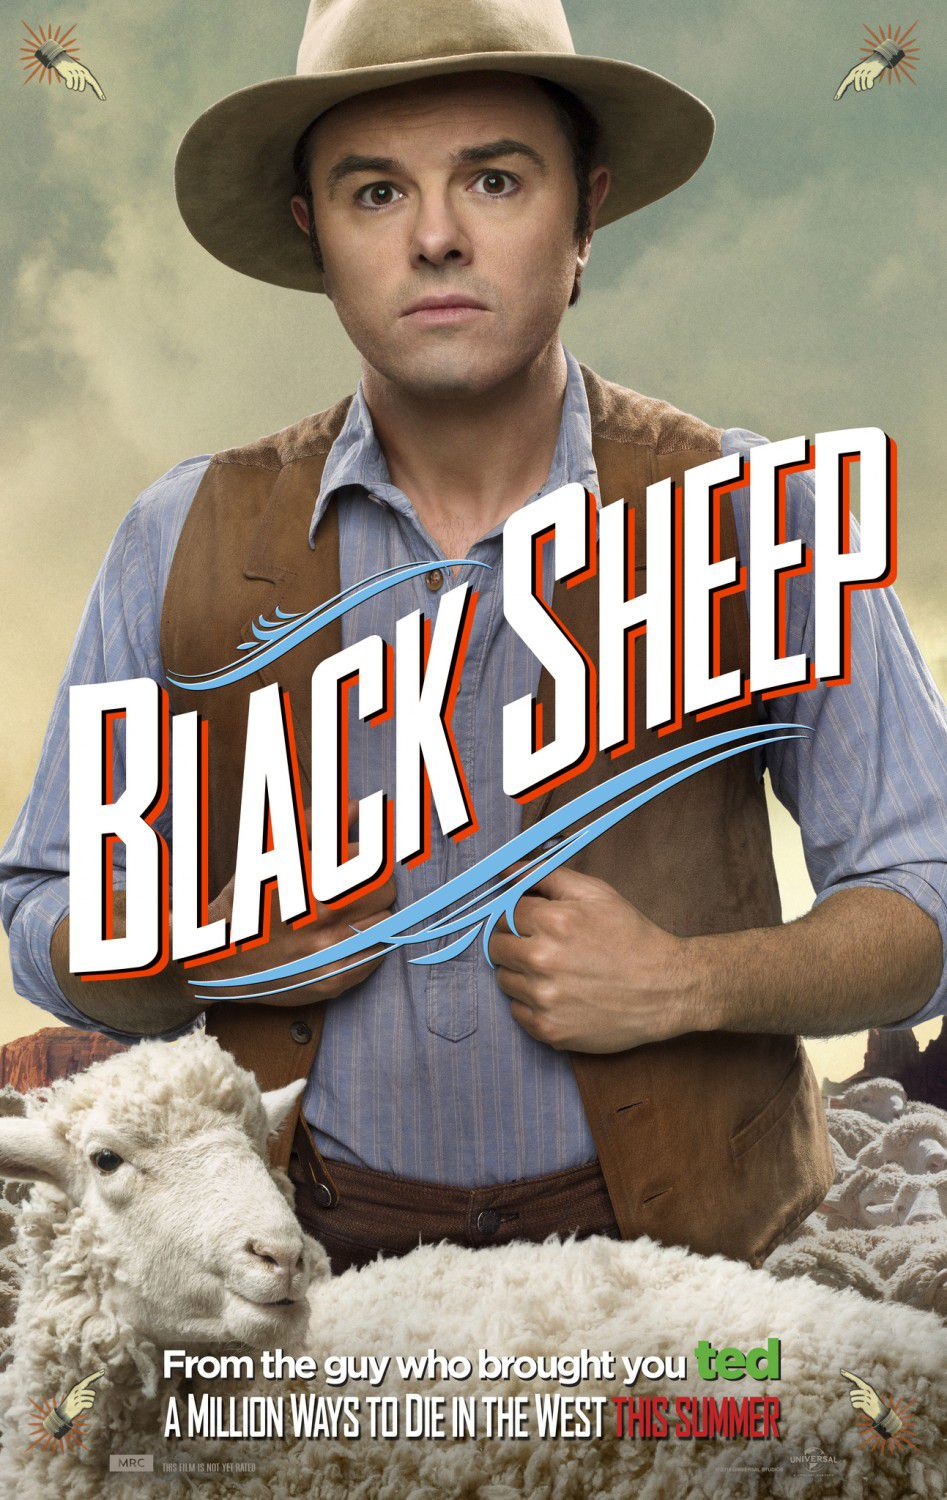 Million ways to Die in the West - Un milione di modi per morire nel West - Black Sheep - Seth Macfarlane